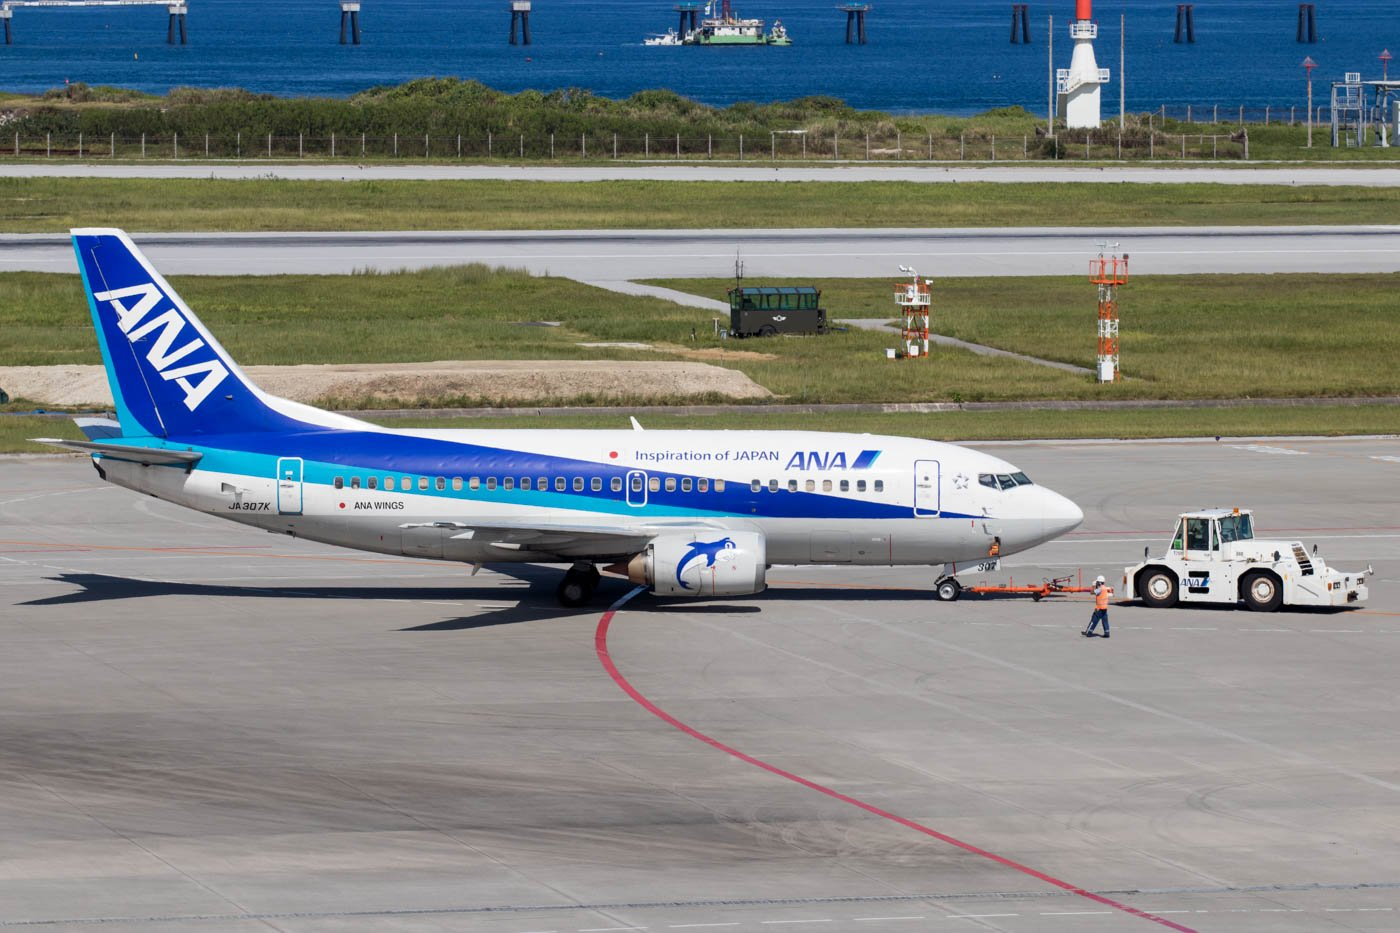 ANA Wings 737-500 at Naha Okinawa